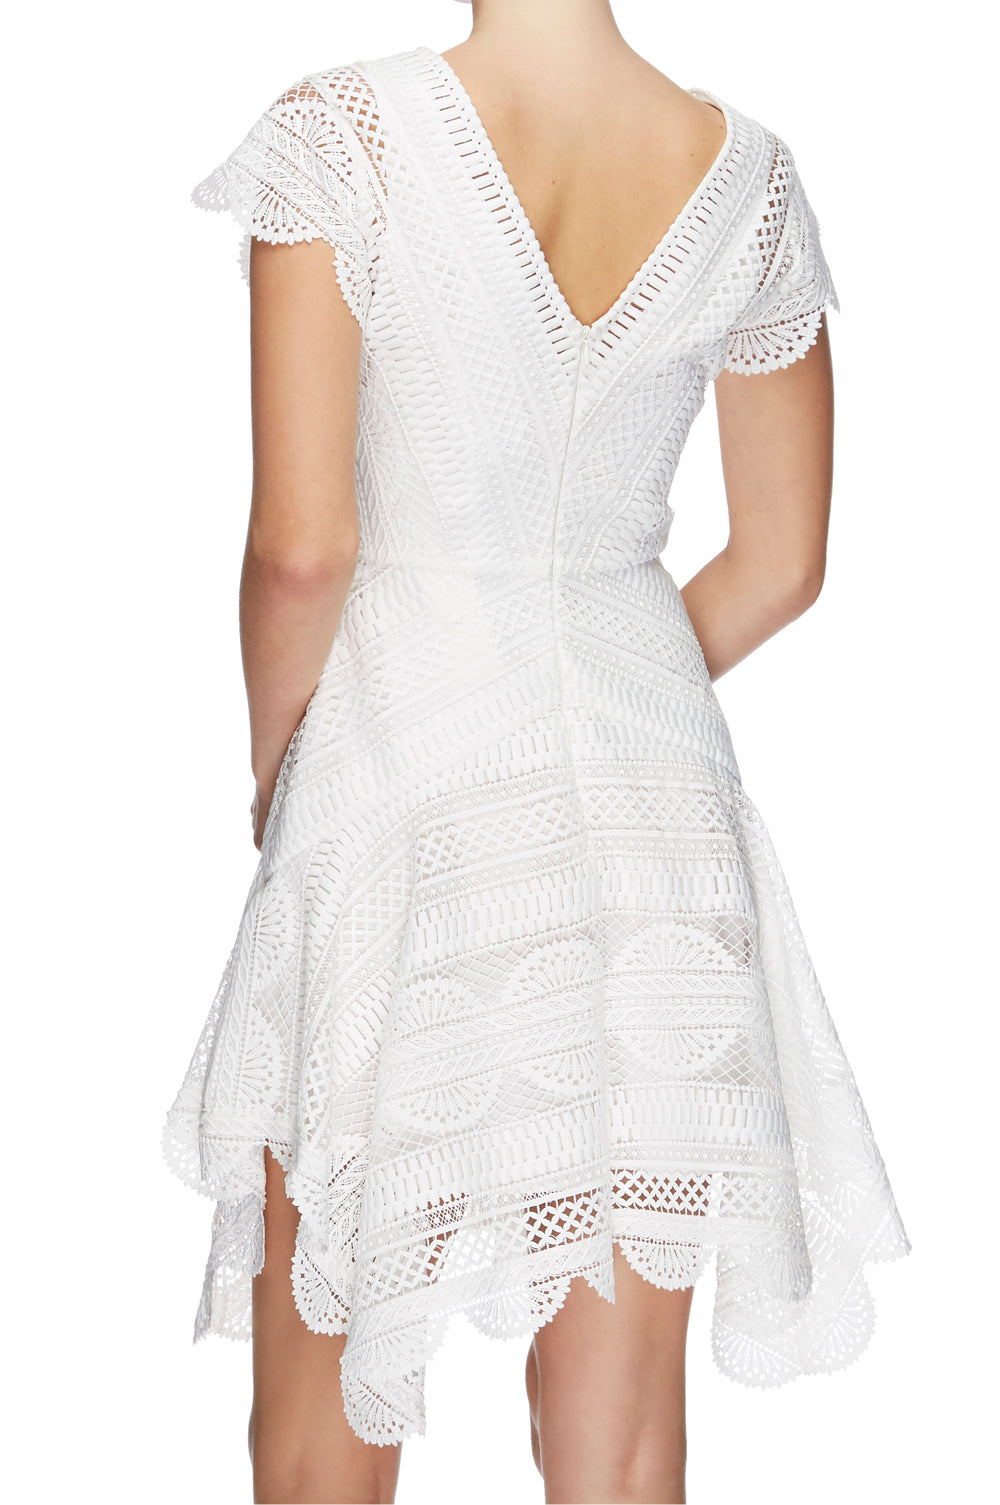 Ode Lace Mini Dress